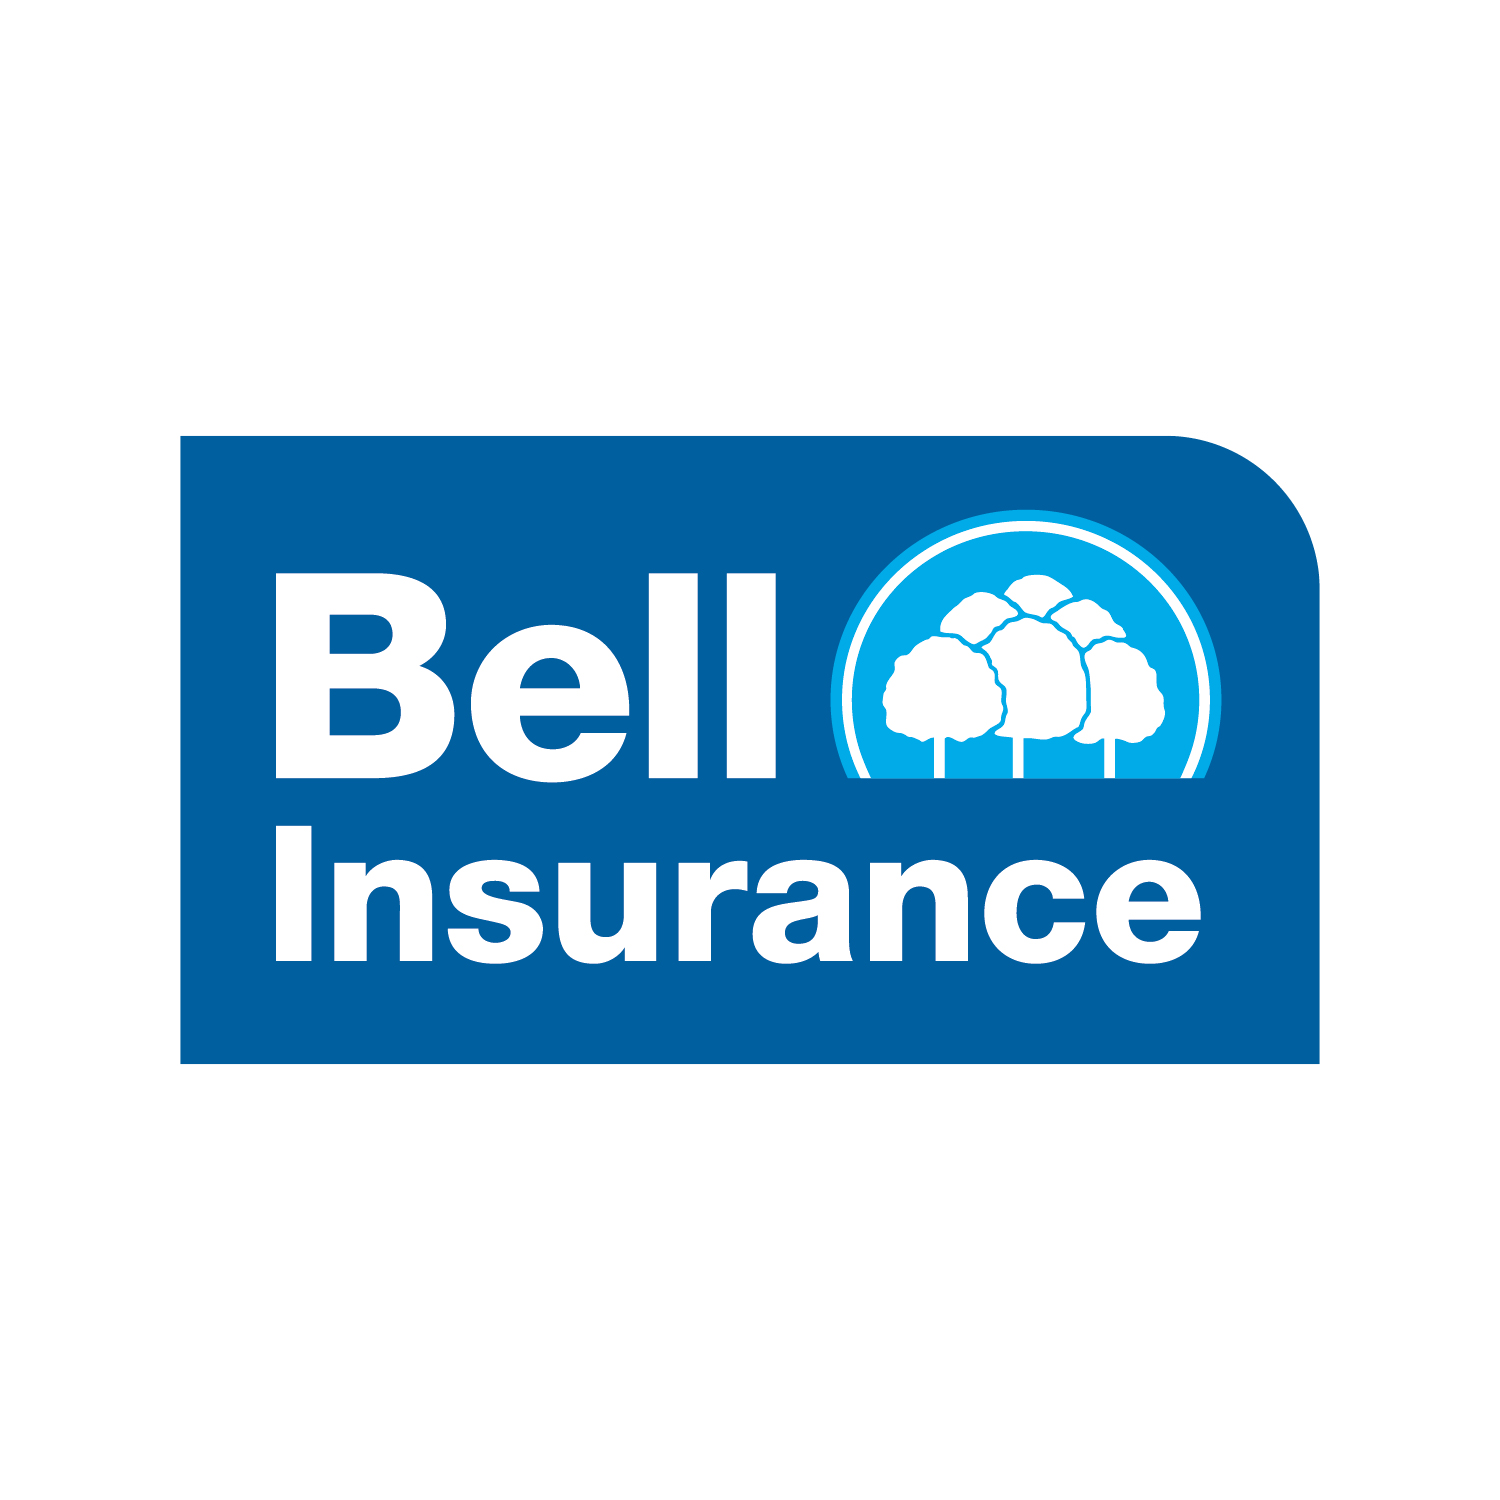 Bell Insurance  311 S 4th Street, #102 Grand Forks, ND 58201  701-775-4626